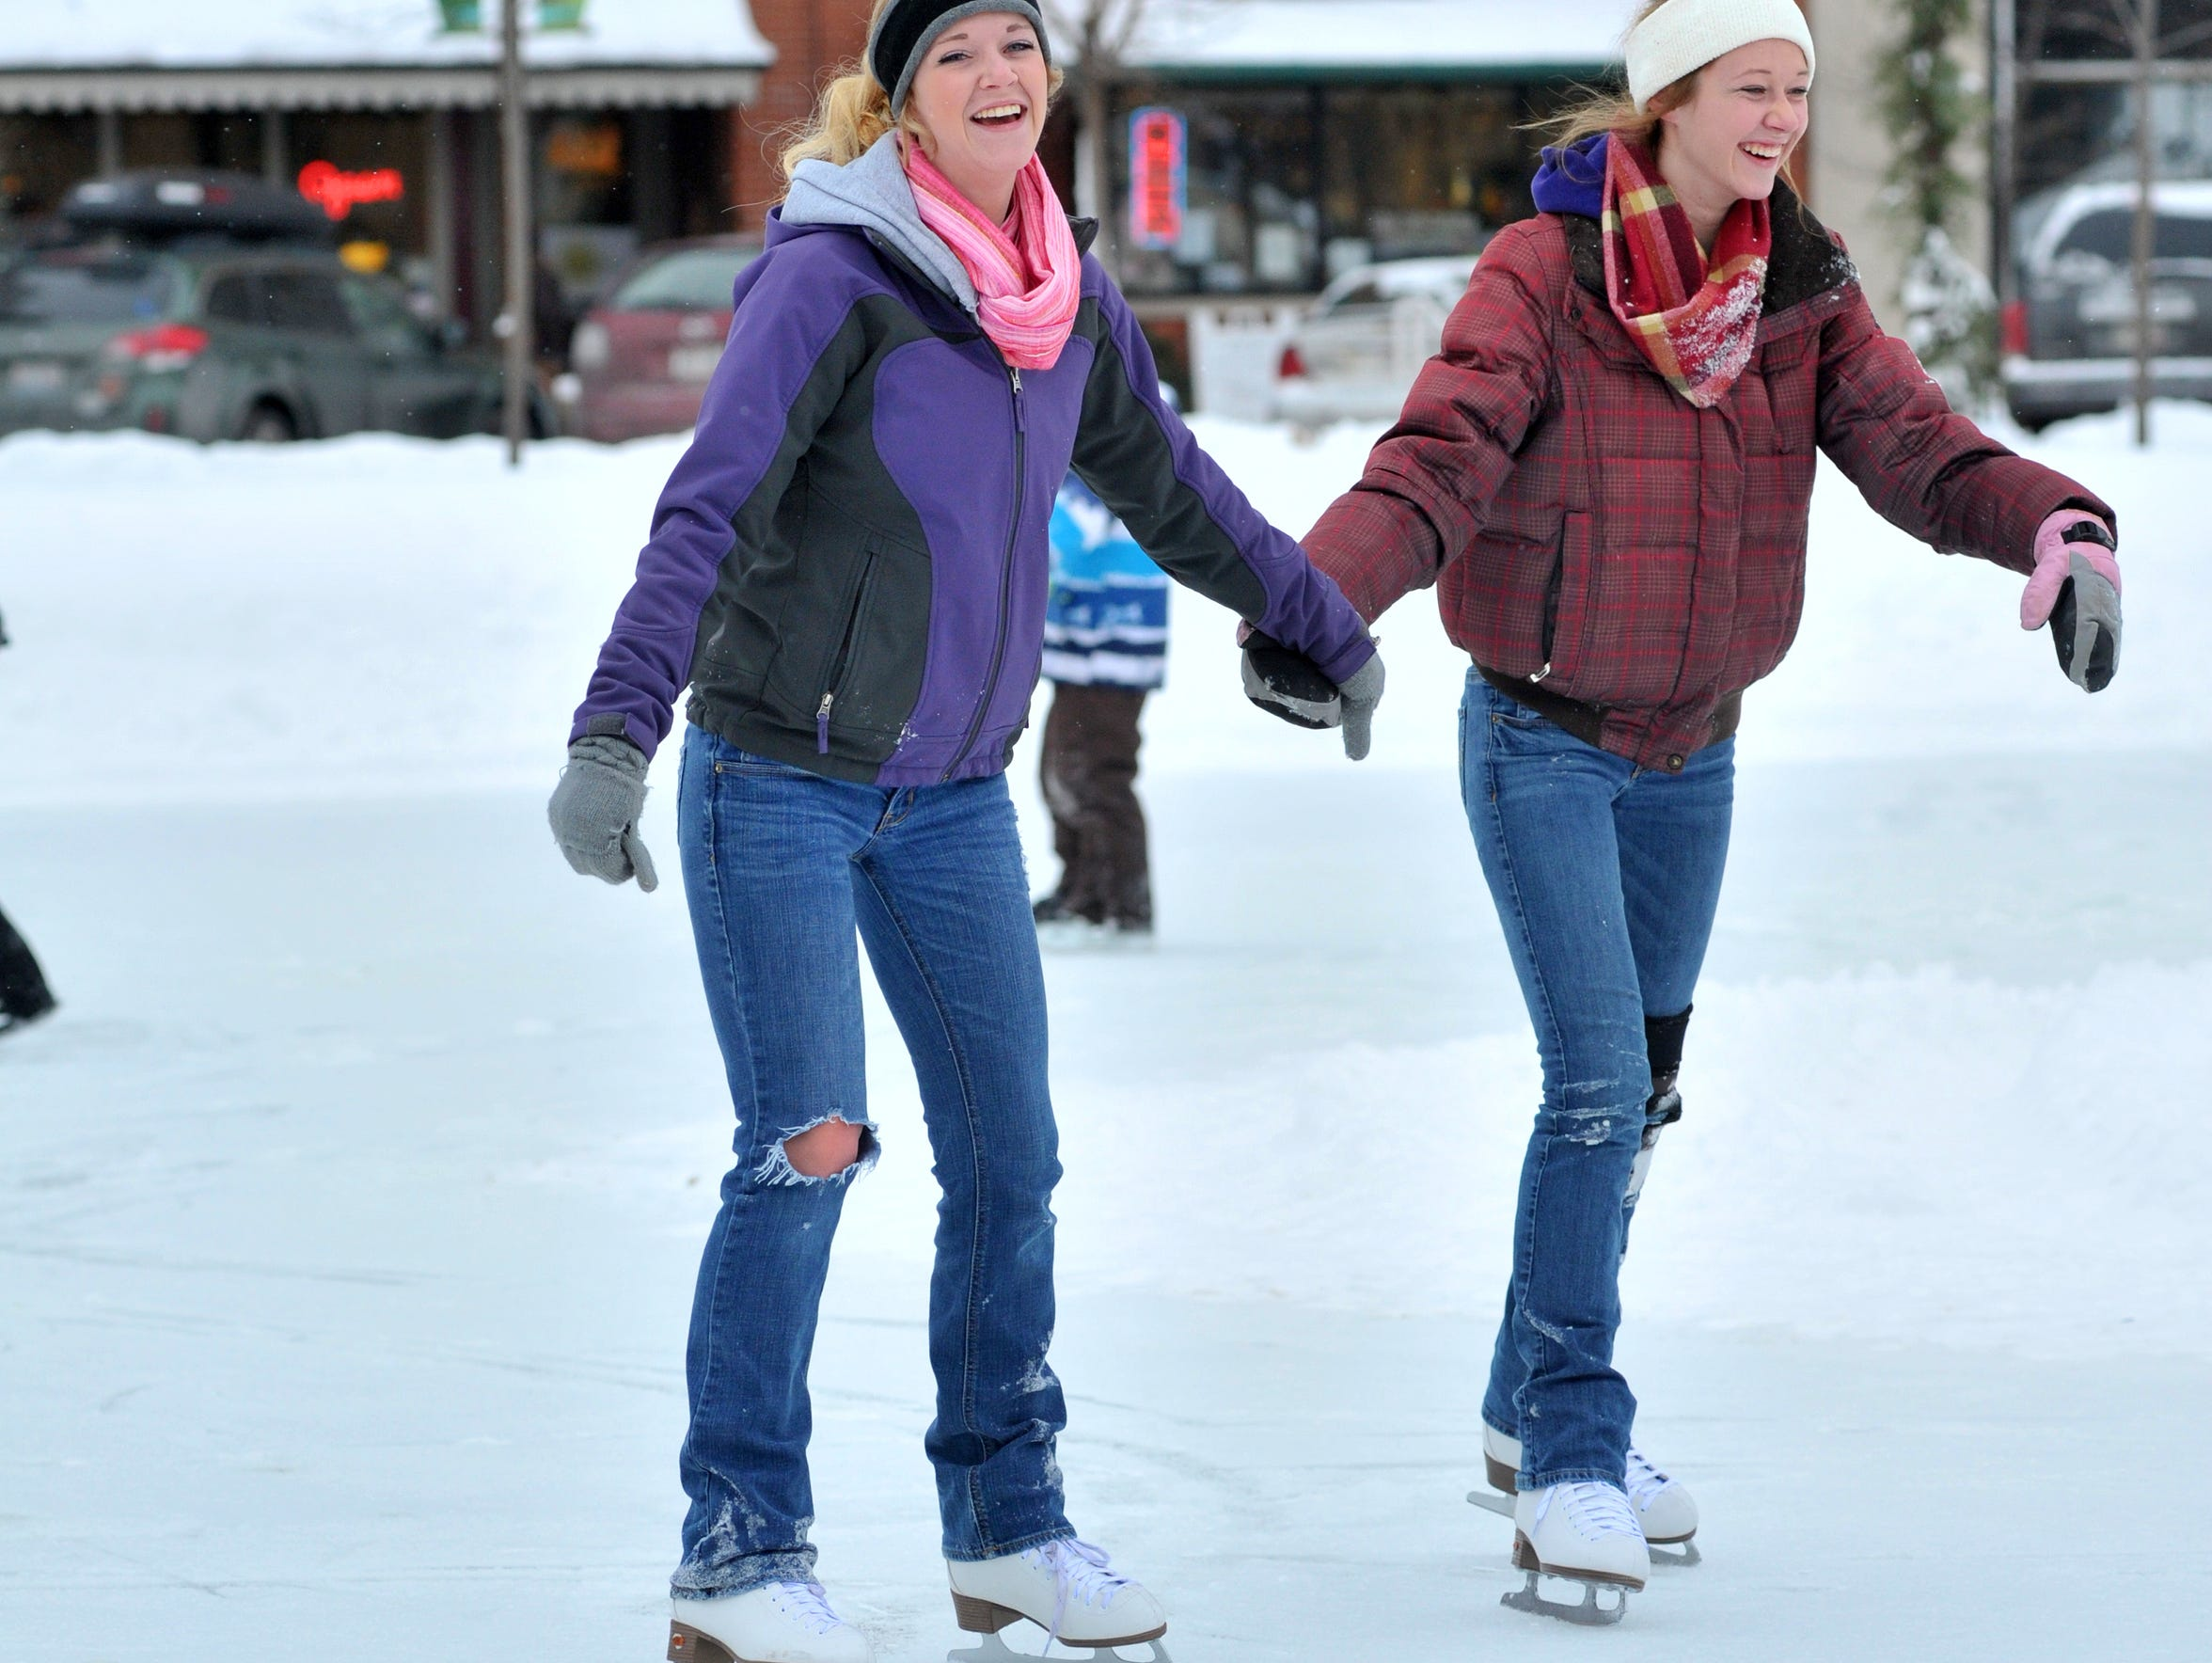 Kennedy Bianco, left, and her sister Amber, skate at